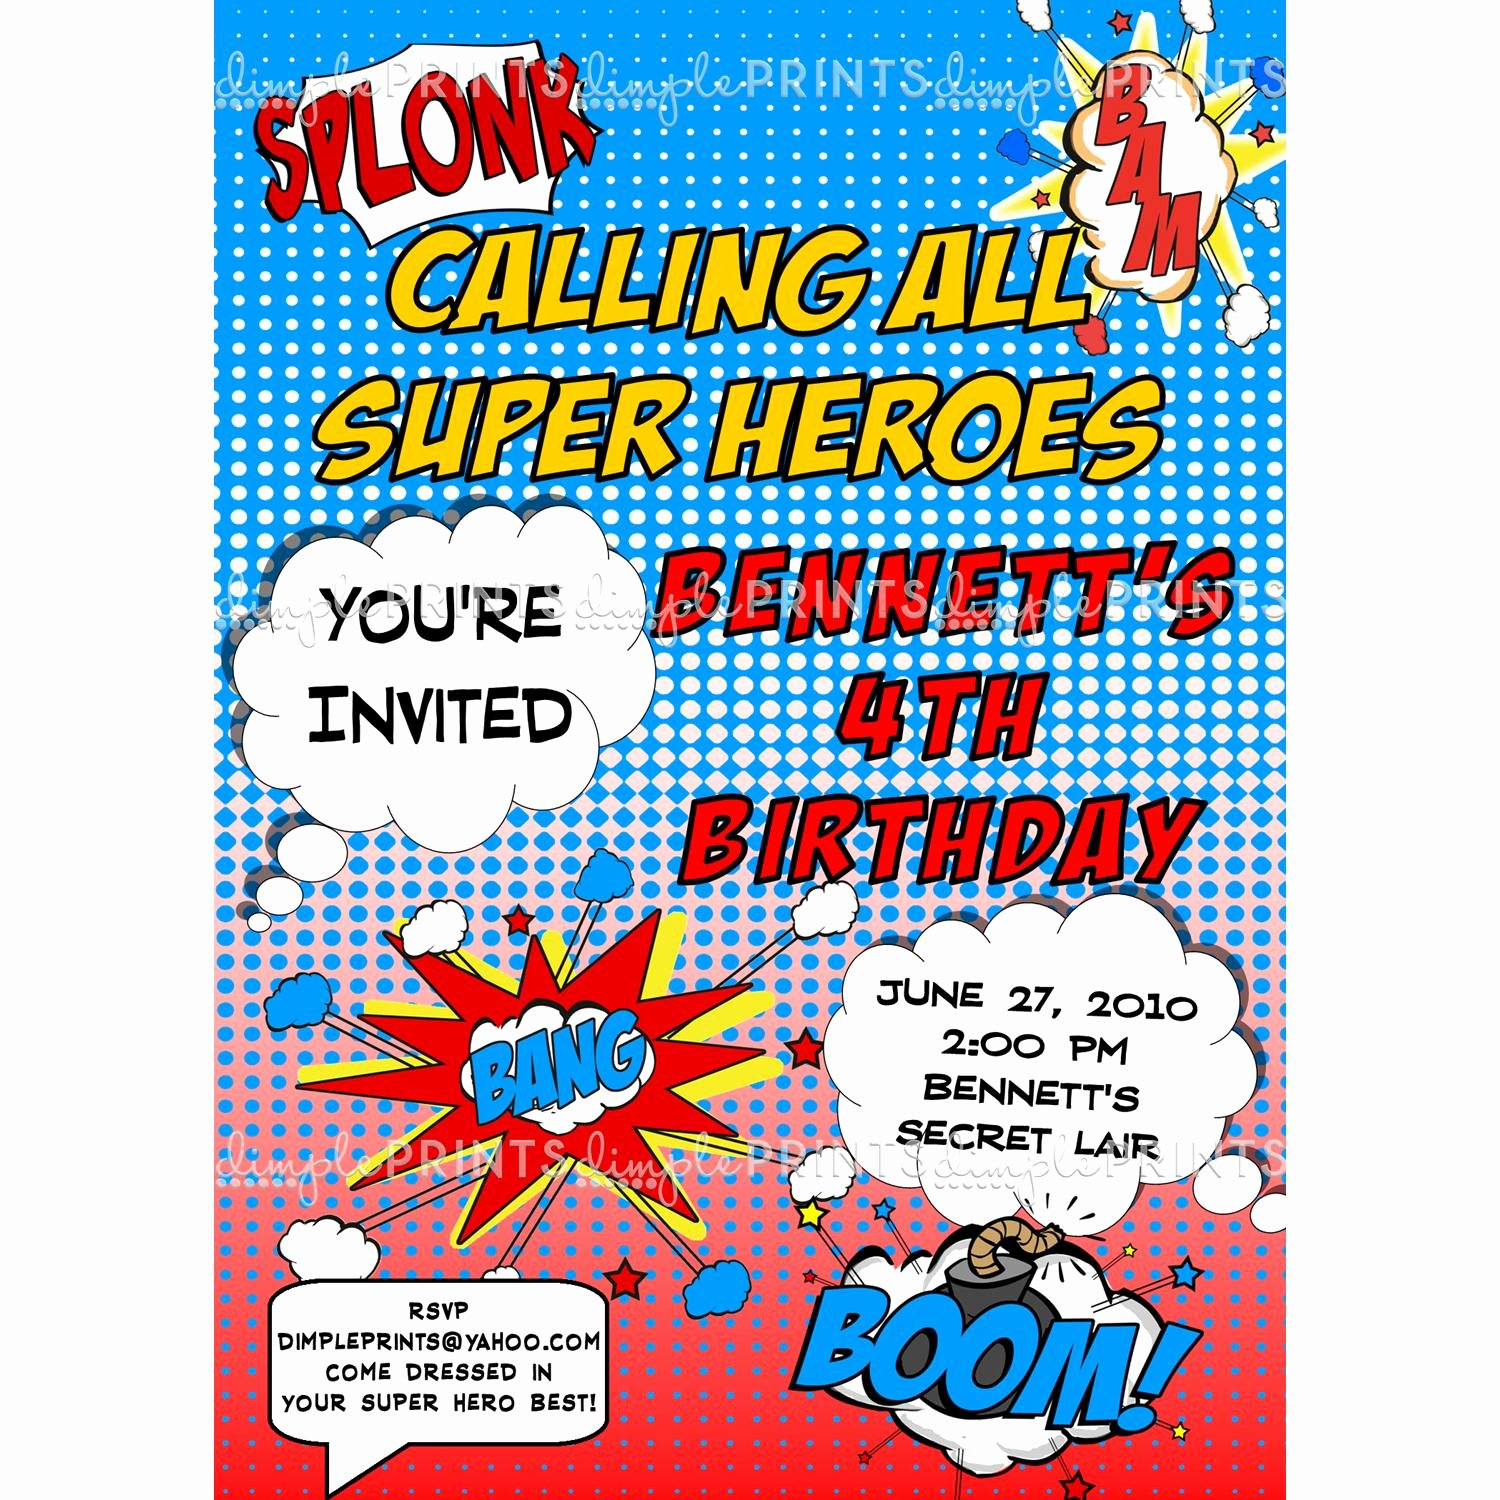 Free Superhero Invitation Template Awesome Superhero Ic Printable Invitation Dimple Prints Shop